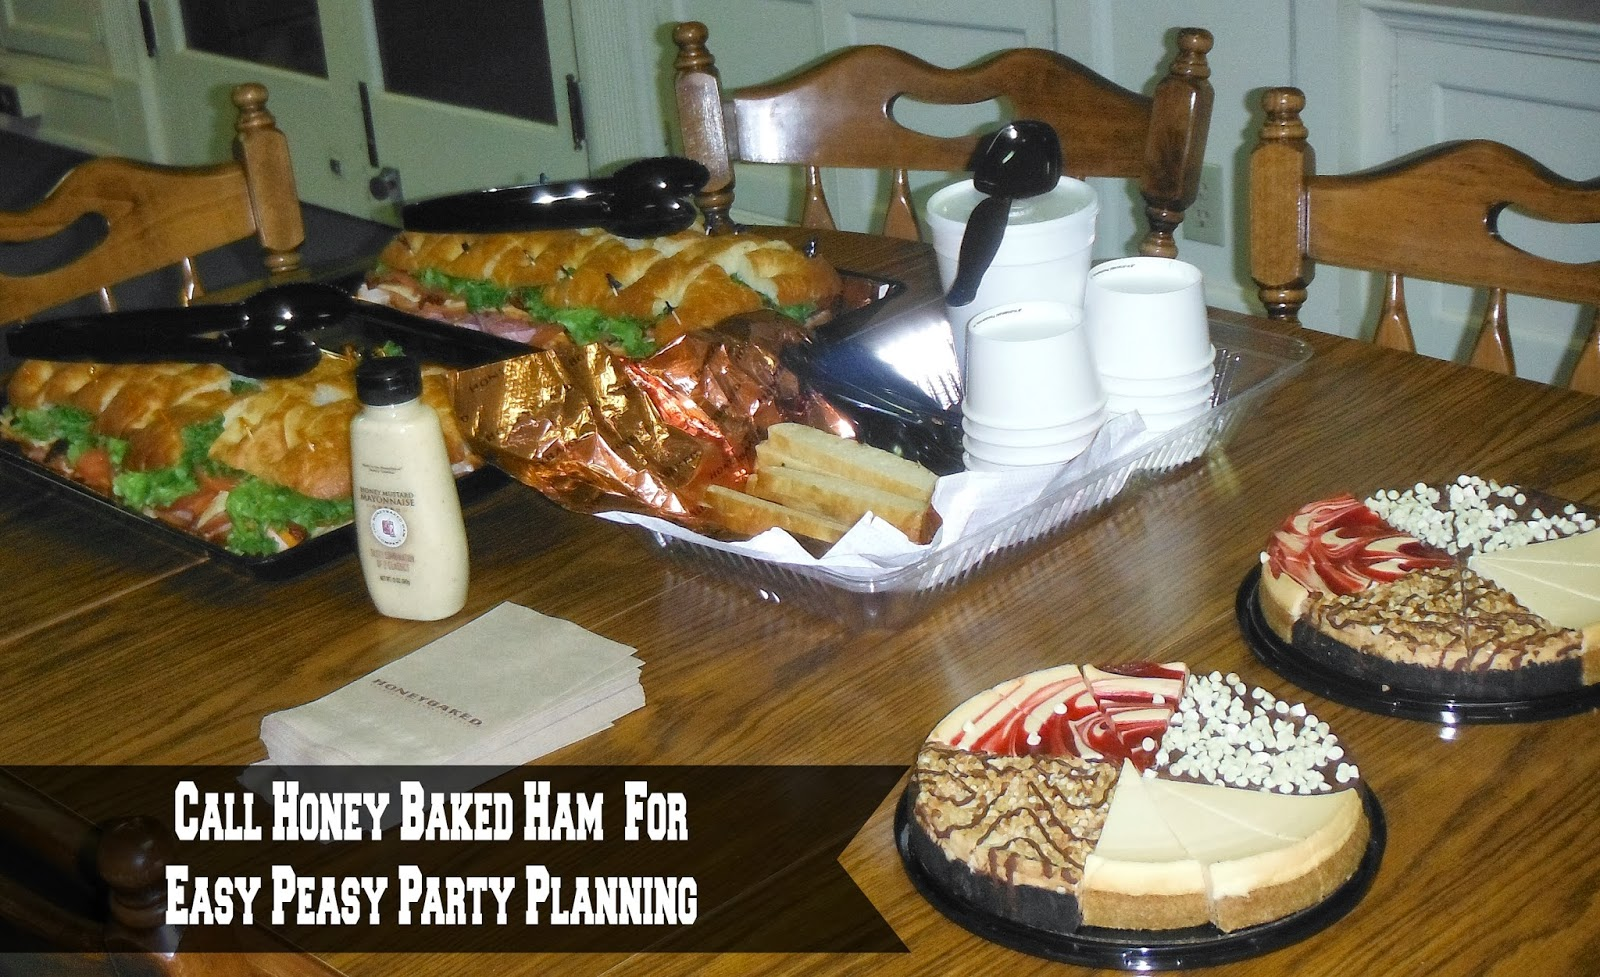 Call Honey Baked Ham for Easy Peasy Party Planning #HoneyBakedGameDay #Giveaway